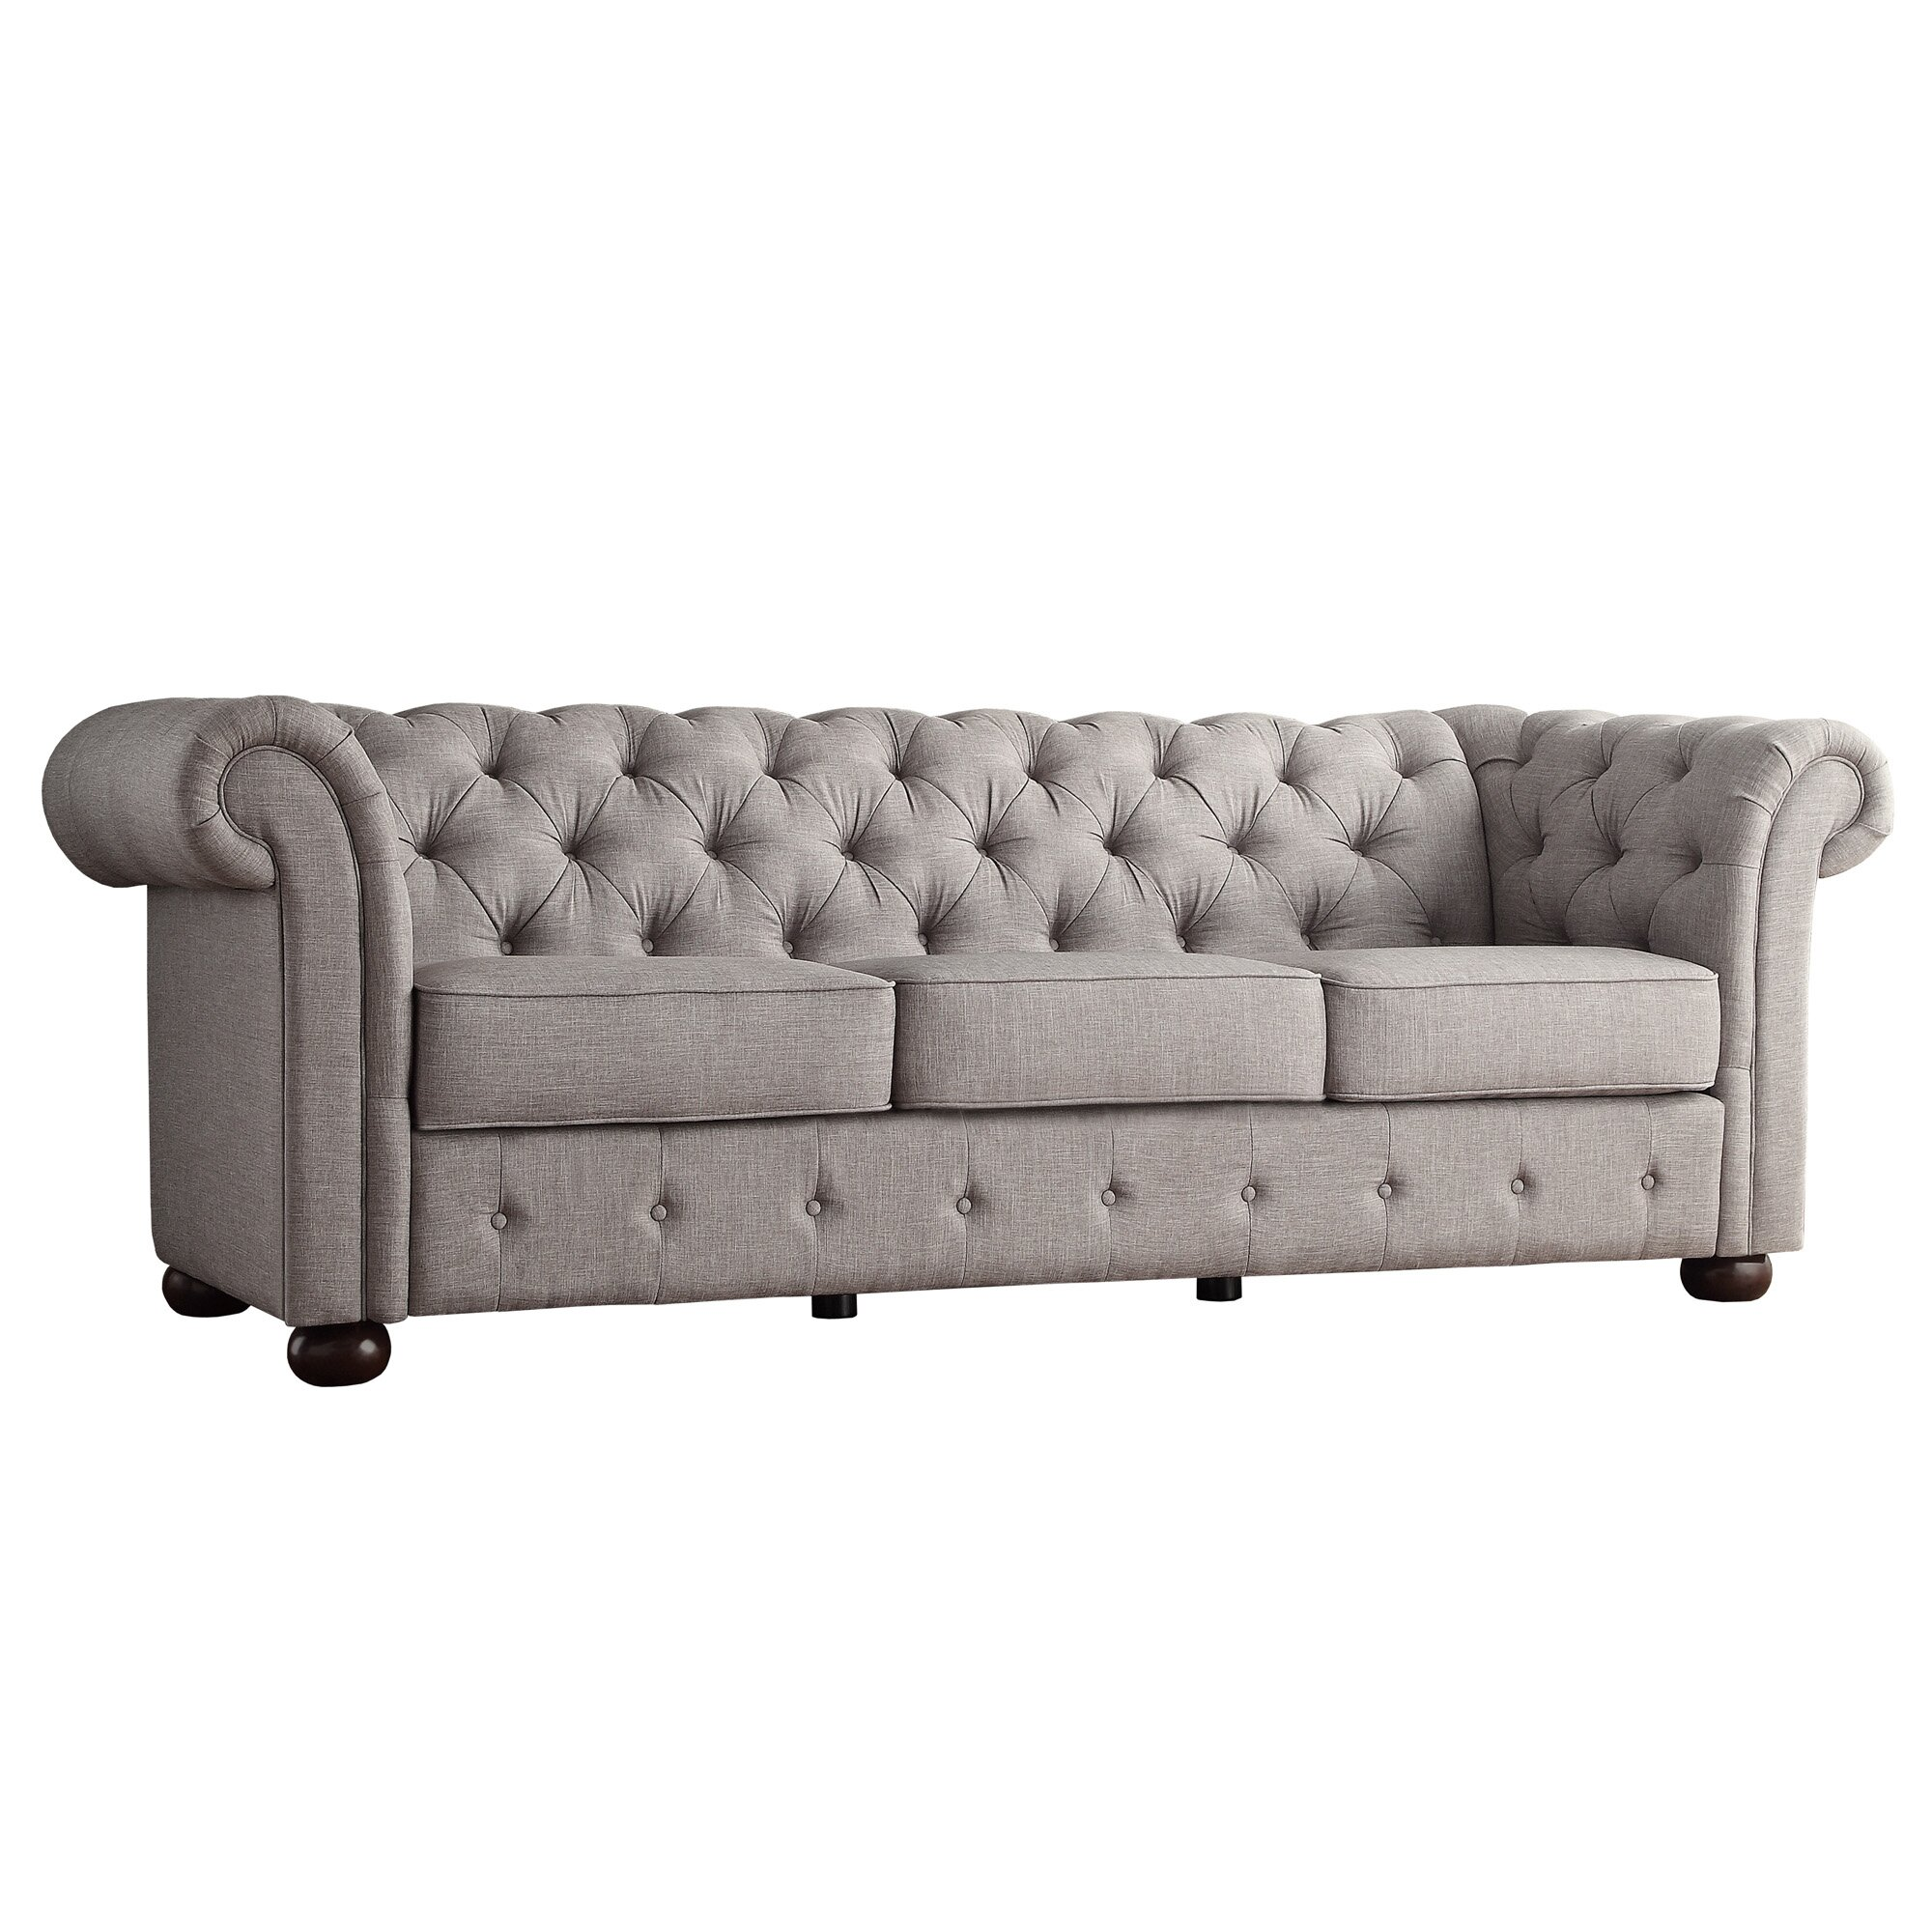 Darby home co conners tufted sofa reviews wayfair for Tufted couches for sale